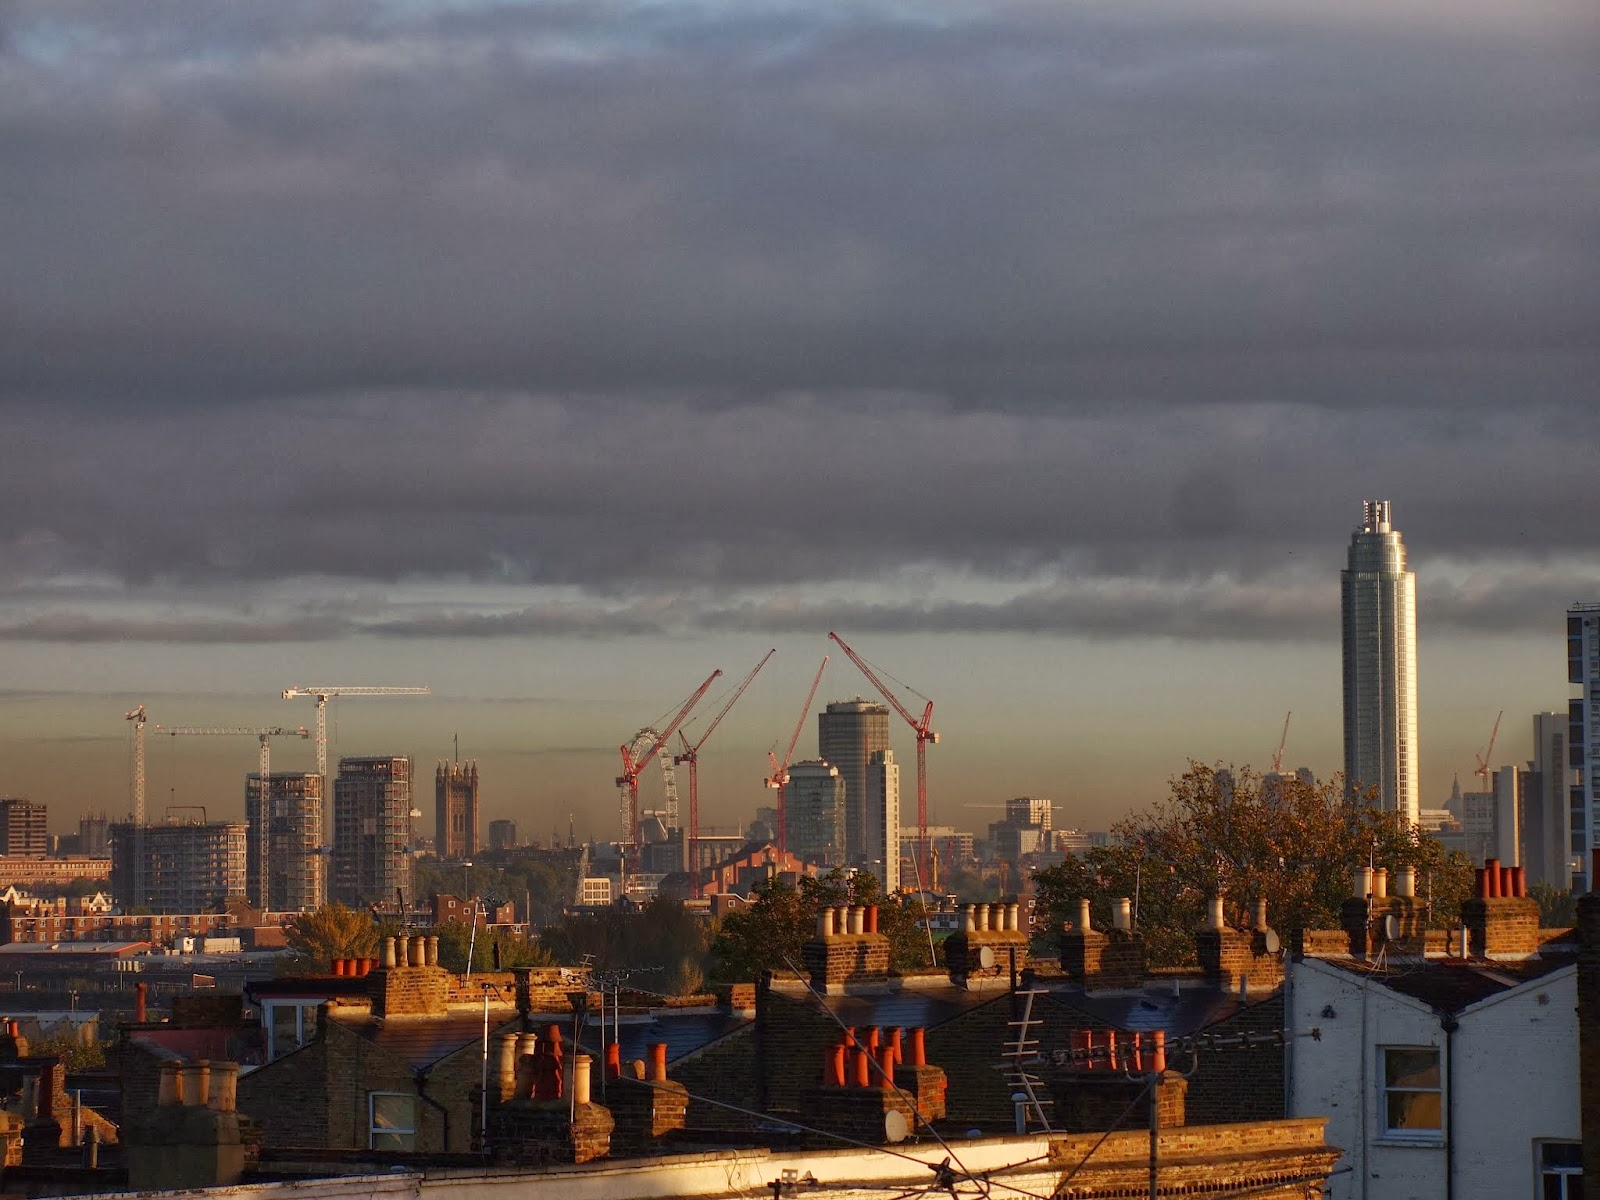 Nine Elms from my bedroom window: au revoir, view of Westminster, hello the new cuboid US embassy instead.